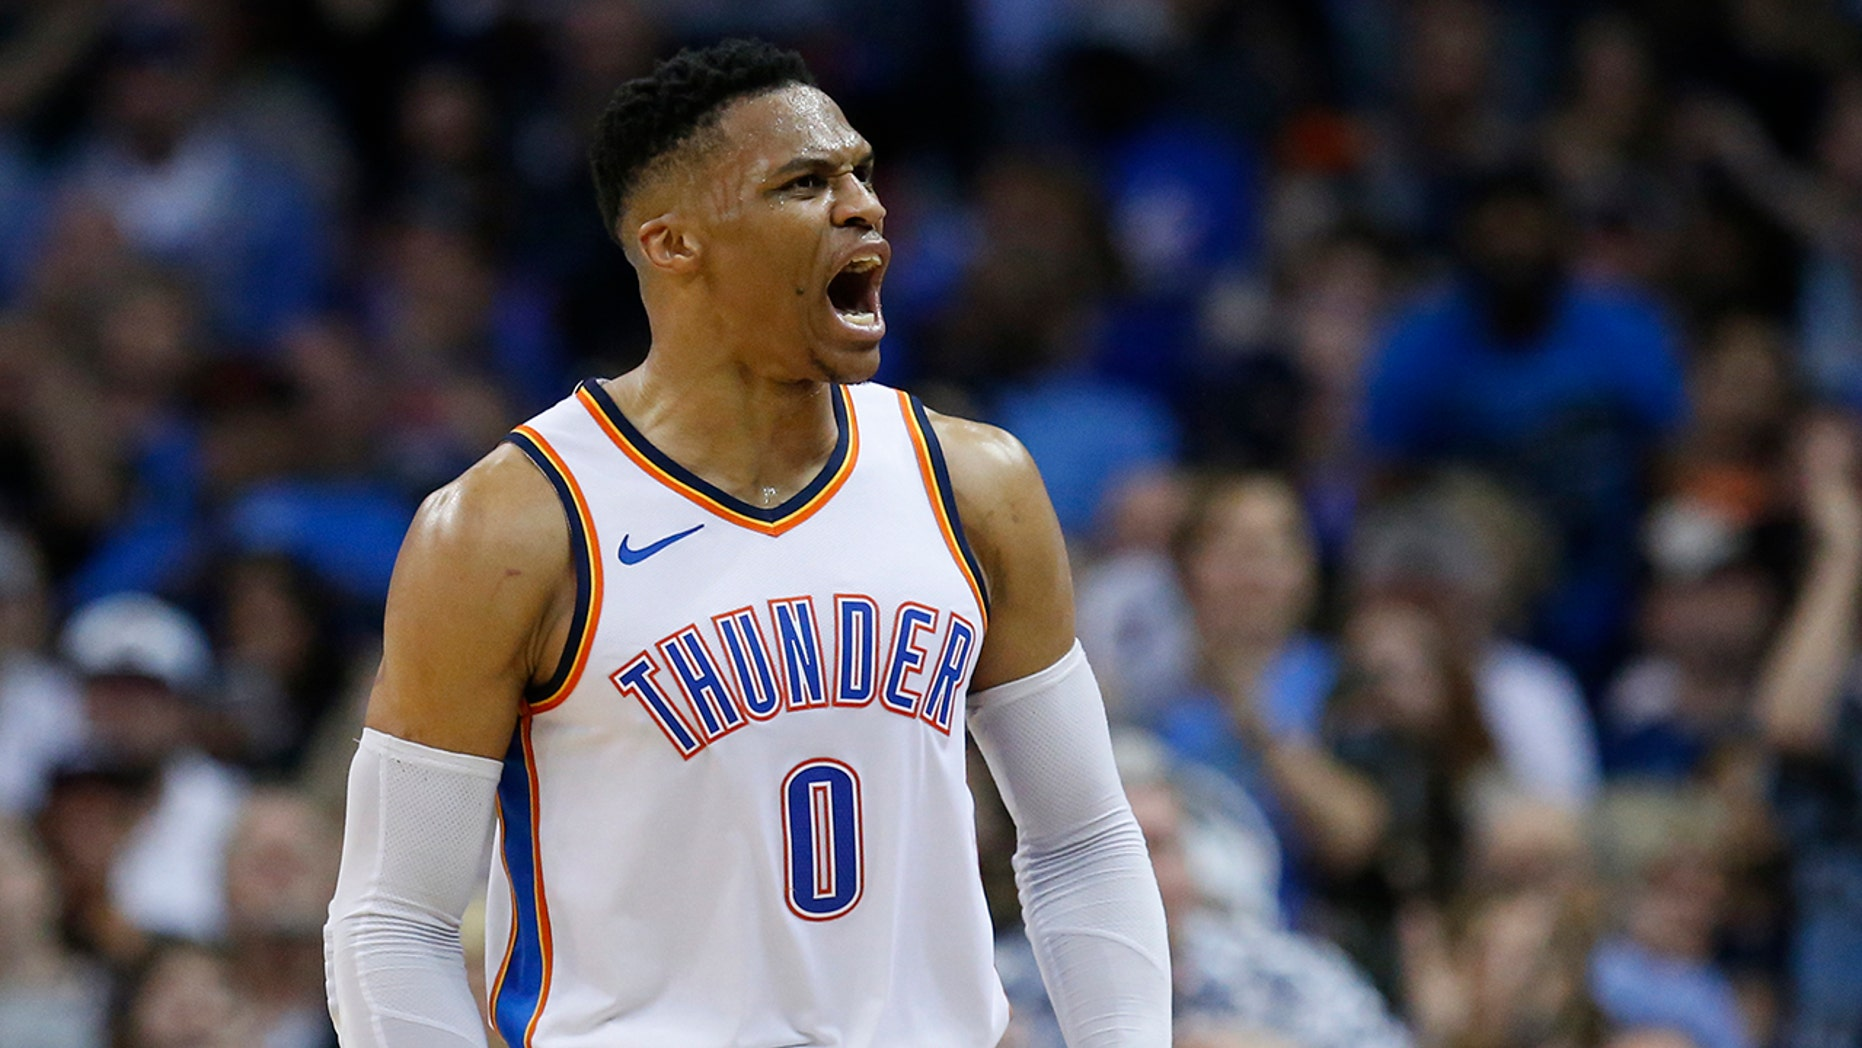 """The Oklahoma City Thunder criticized a broadcaster Thursday for using the term """"cotton-picking"""" to describe Russell Westbrook's play in the team's season finale."""